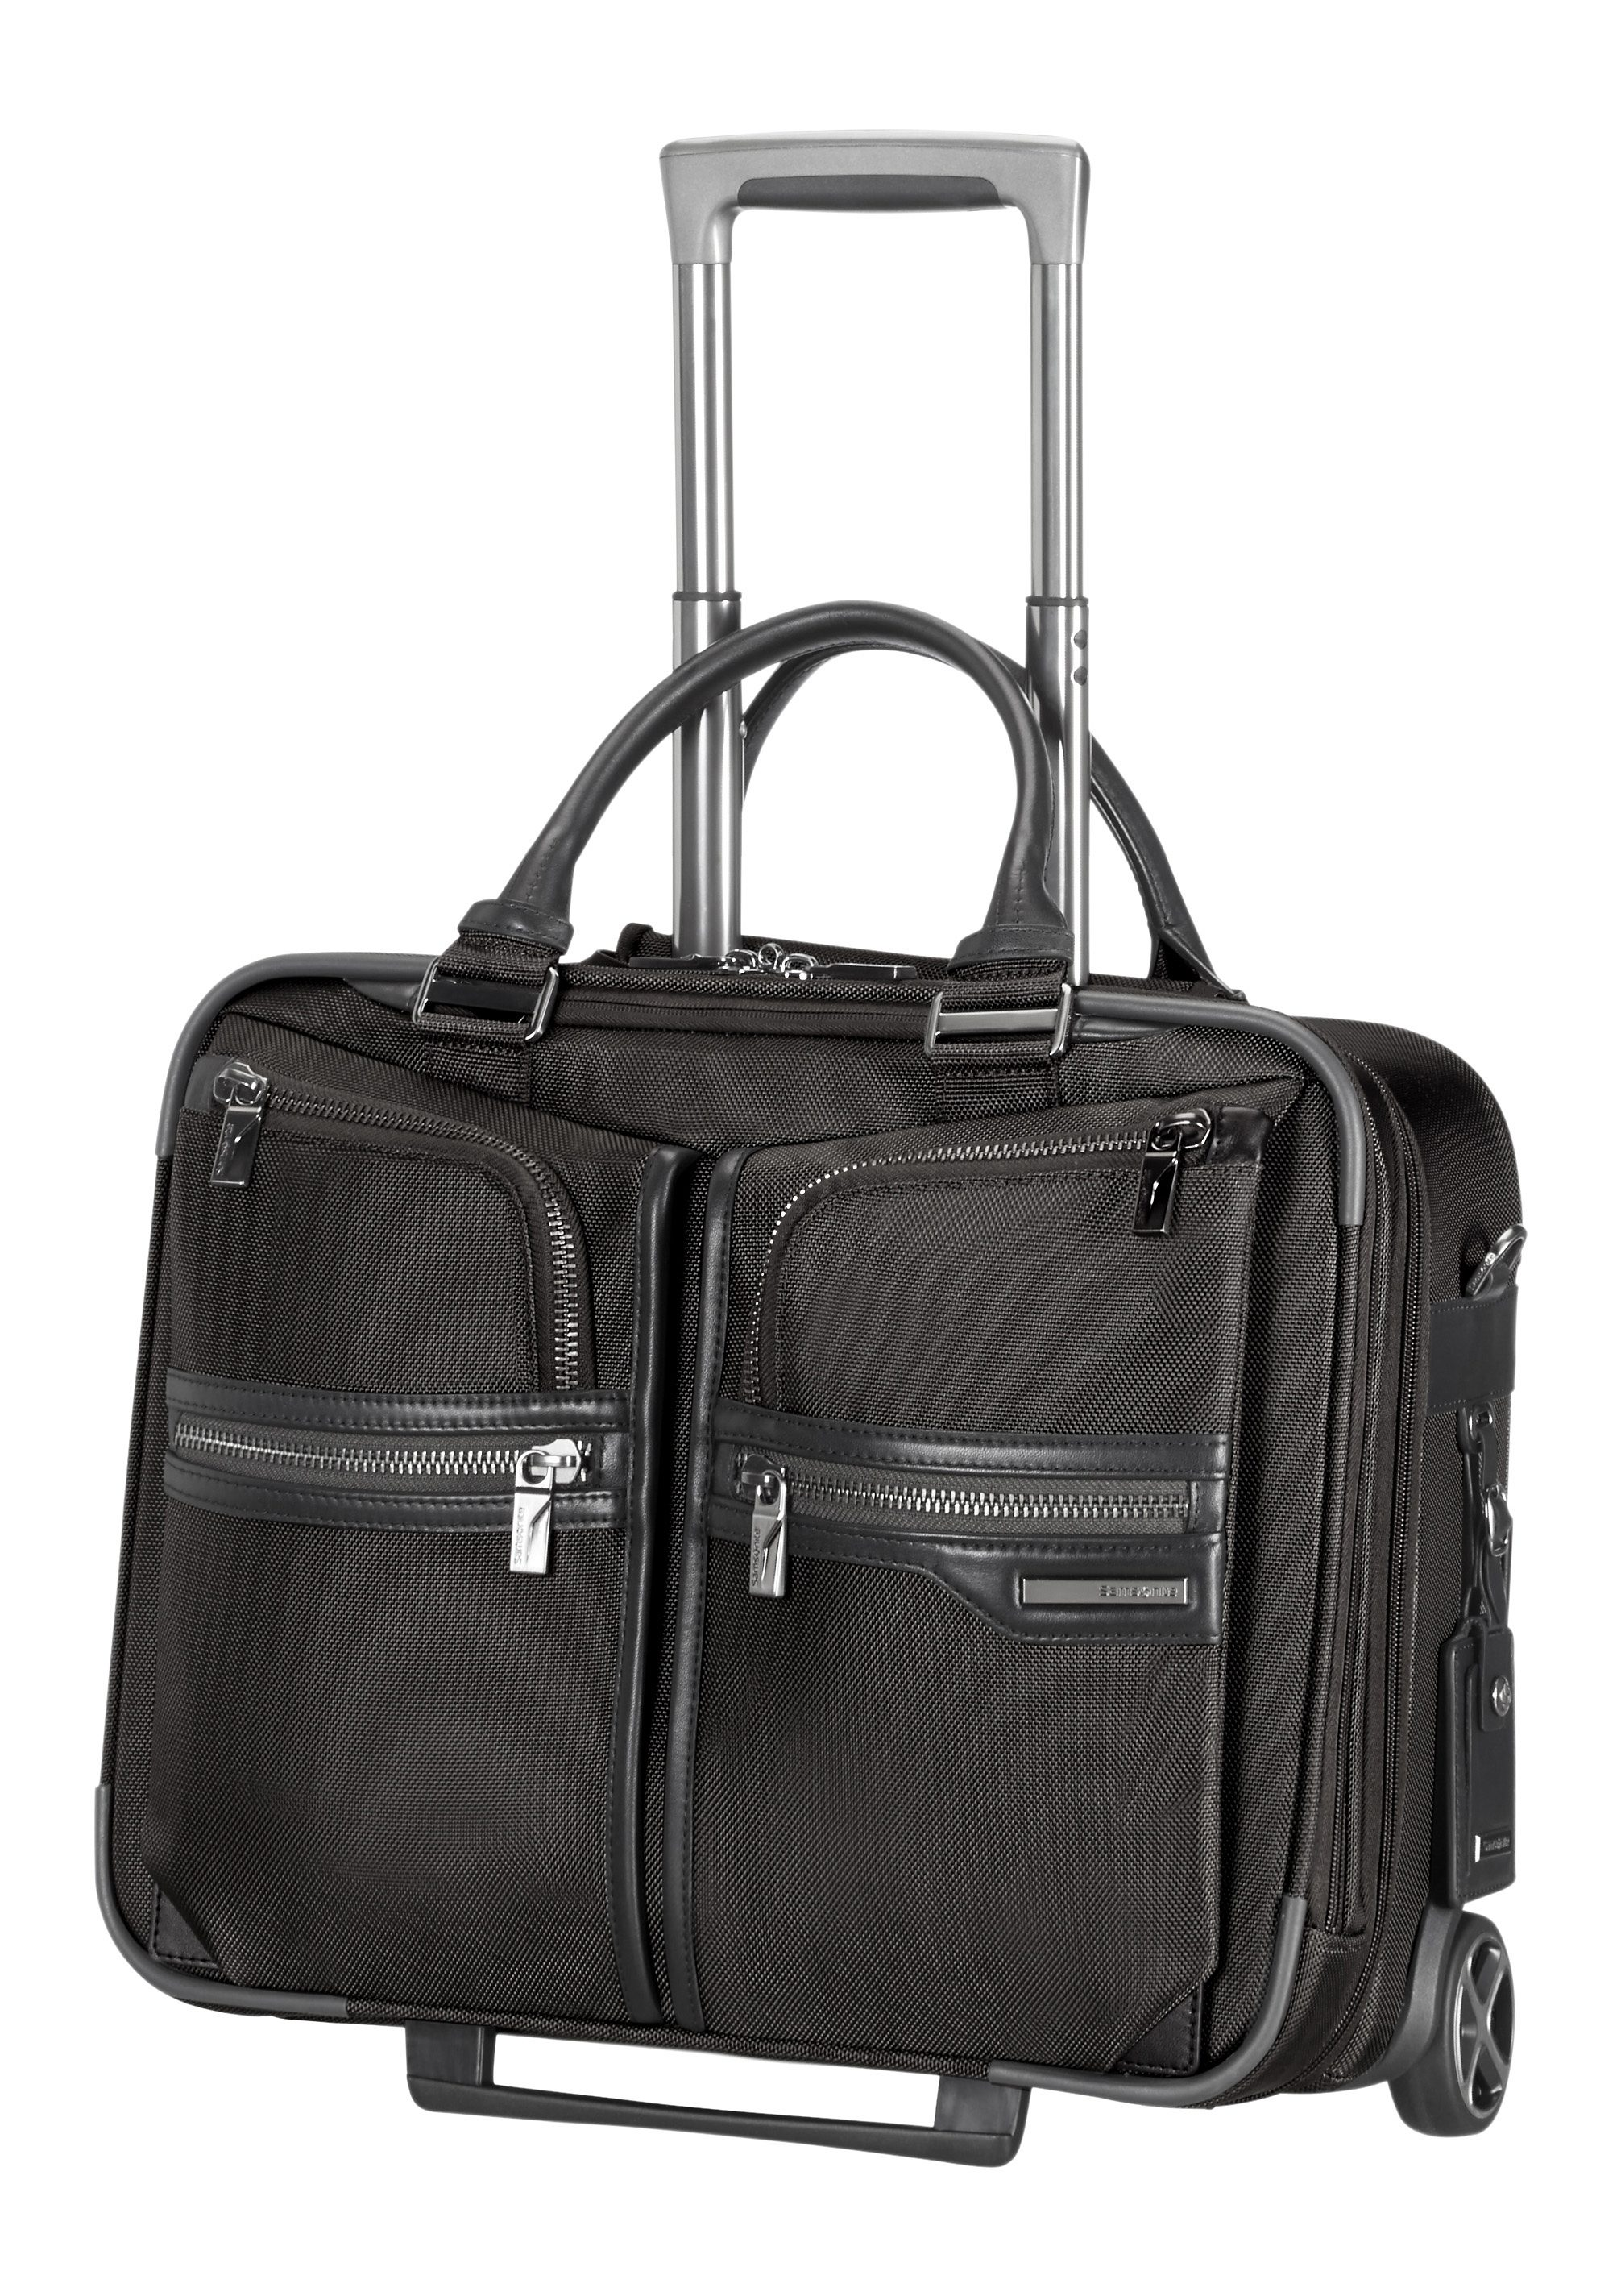 Samsonite Businesstrolley mit 2 Rollen, Tablet- und 16,4-Zoll Laptopfach, »GT Supreme«